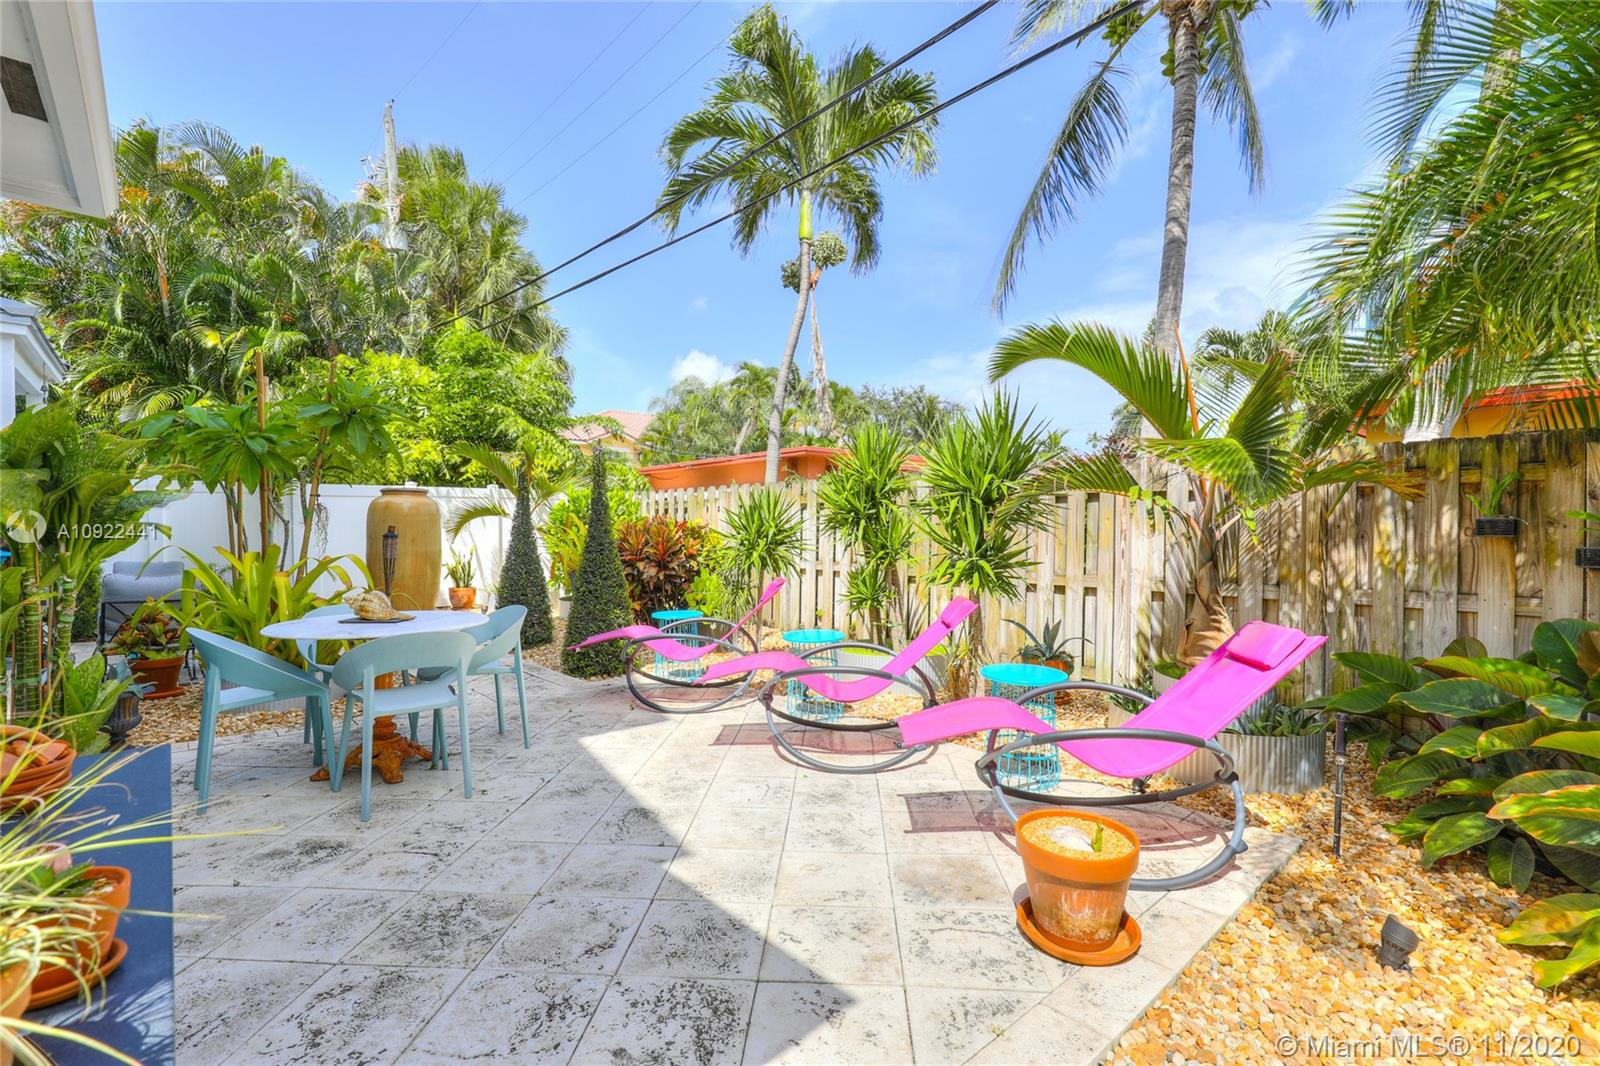 Key West style luxury townhouse walking distance to the Galleria Mall, beach, and a short drive to Las Olas and Wilton Manors. This newly landscaped end unit with a 2 car garage gives you lots of privacy. There are three ensuite bedrooms including one on the first floor perfect for visiting guests. The open living area and large kitchen with high-end appliances are great for entertaining. All flooring is Italian marble with wood flooring in staircases! Lots of light from windows and balcony and lots of upgrades! Private backyard for your pet!